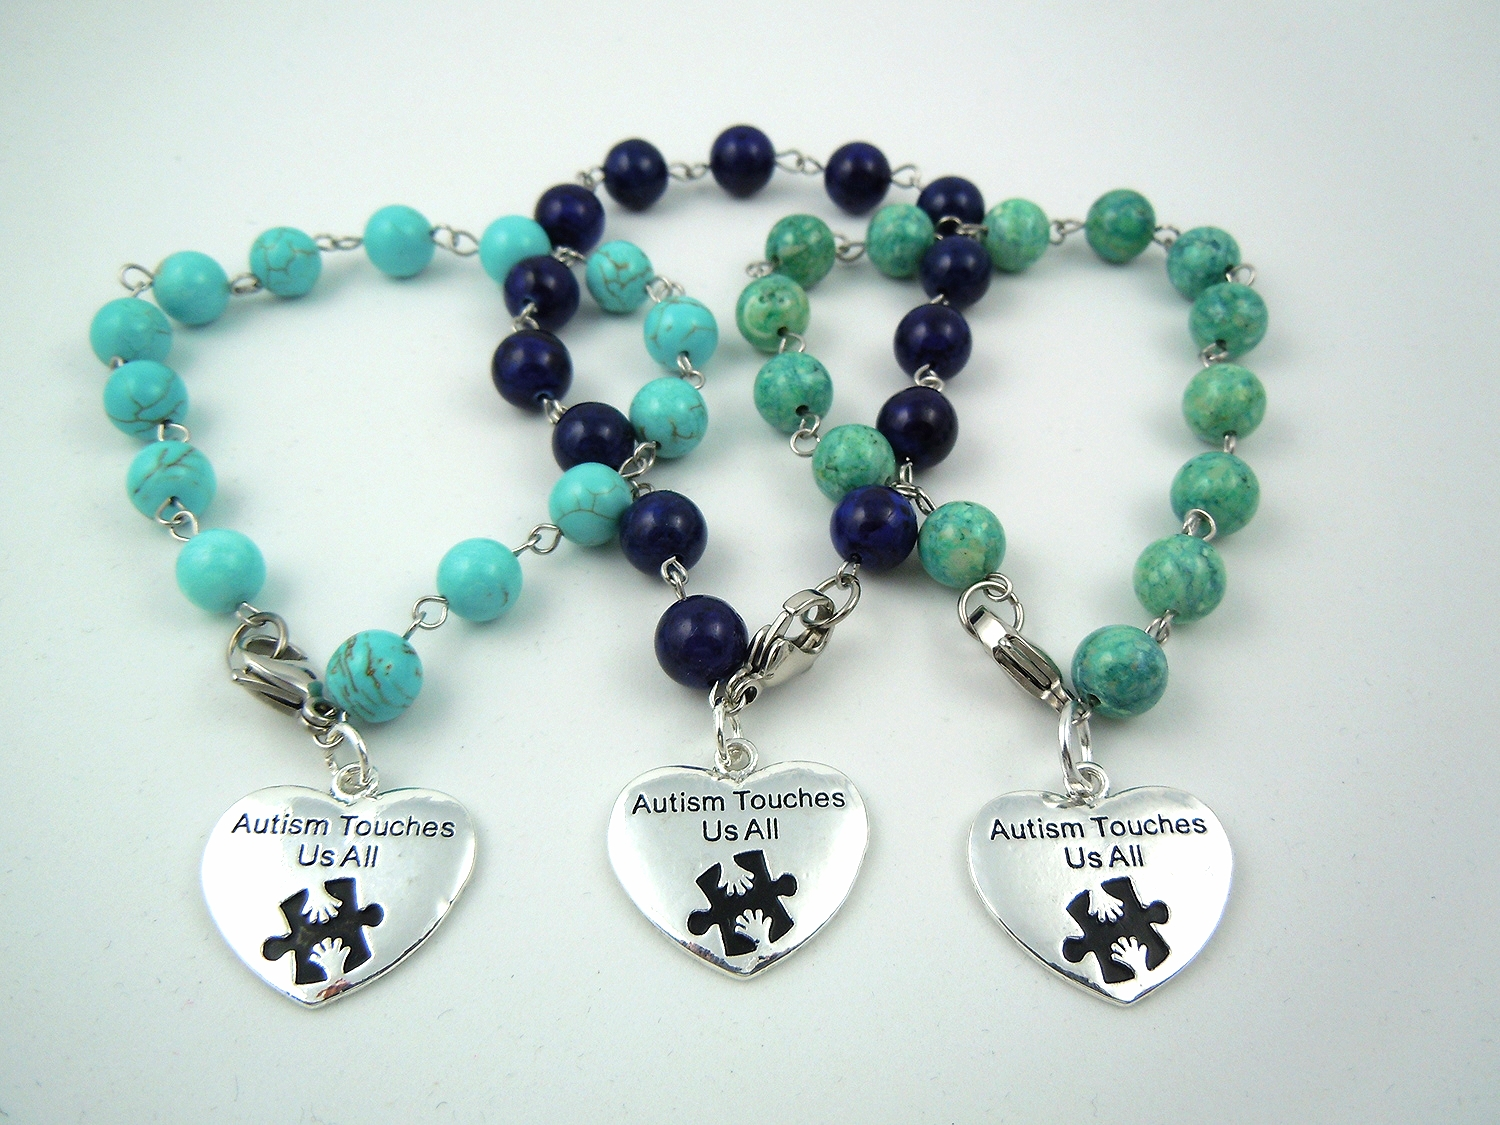 Gemstone Autism bracelets to raise awareness in a fashionable way.